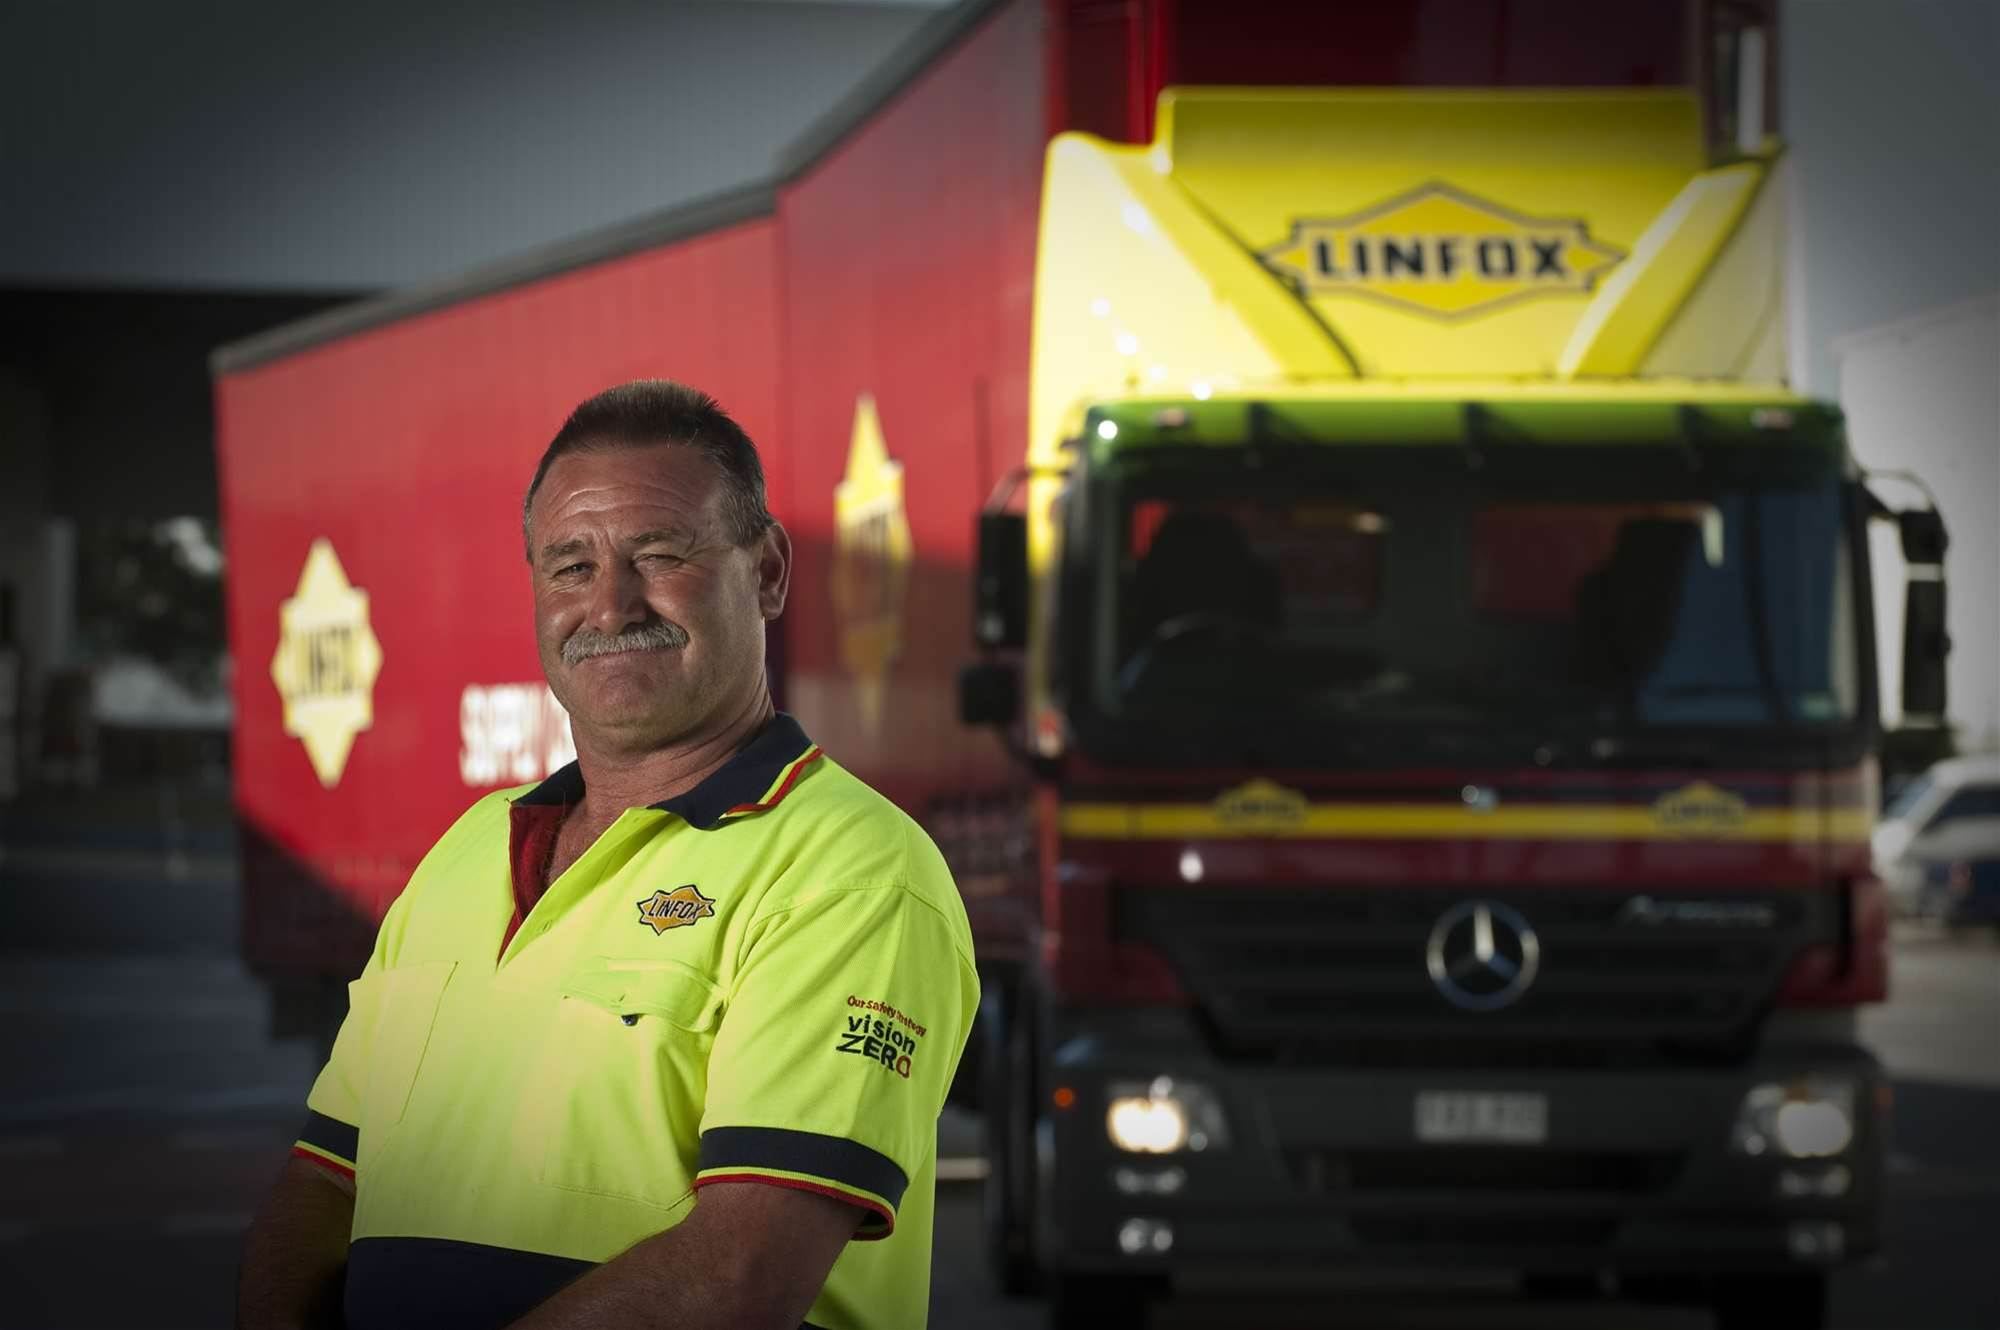 Linfox crunches big data to keep trucks on time